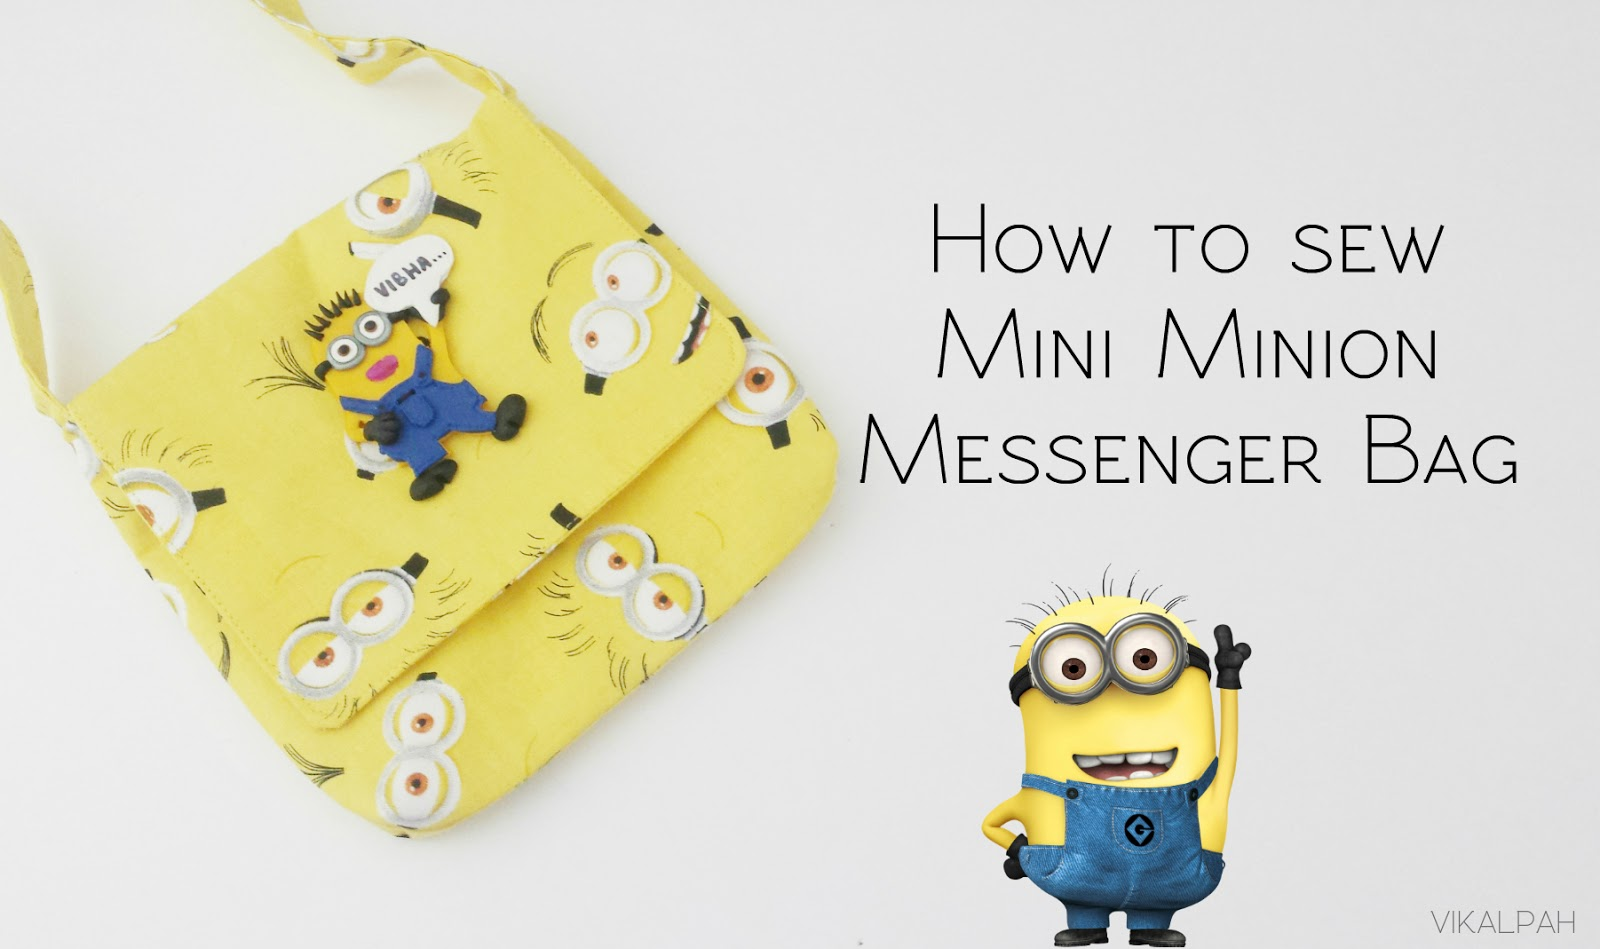 Vikalpah: How to sew mini minion messenger bag